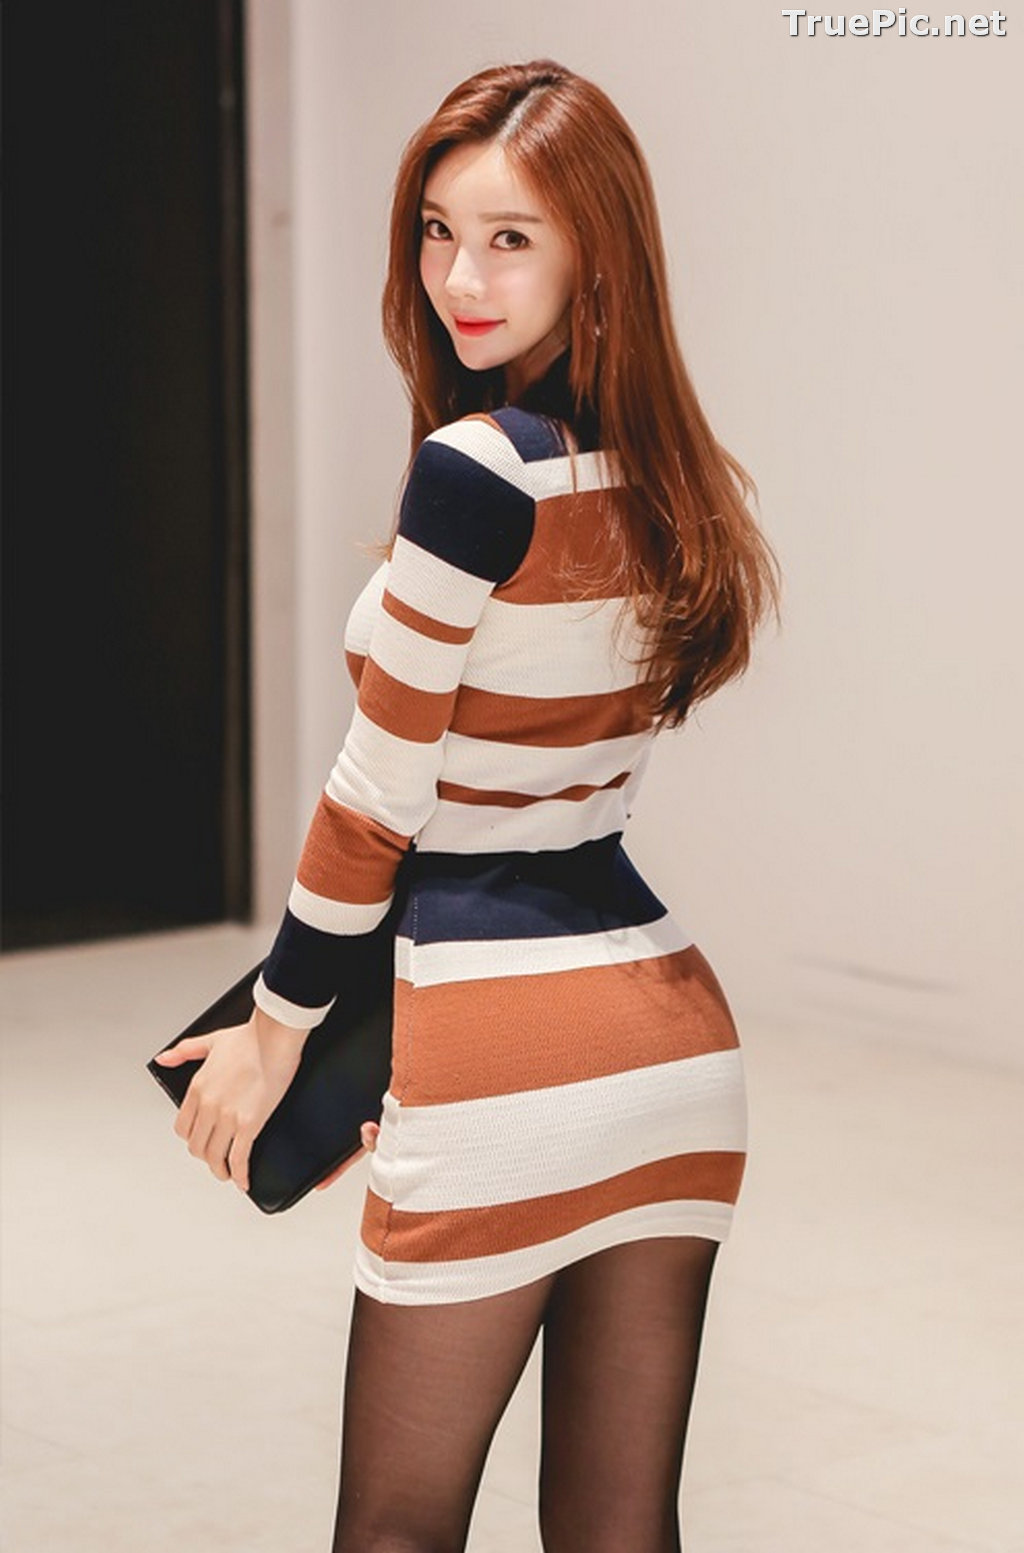 Image Korean Fashion Model – Hyemi – Office Dress Collection #2 - TruePic.net - Picture-7